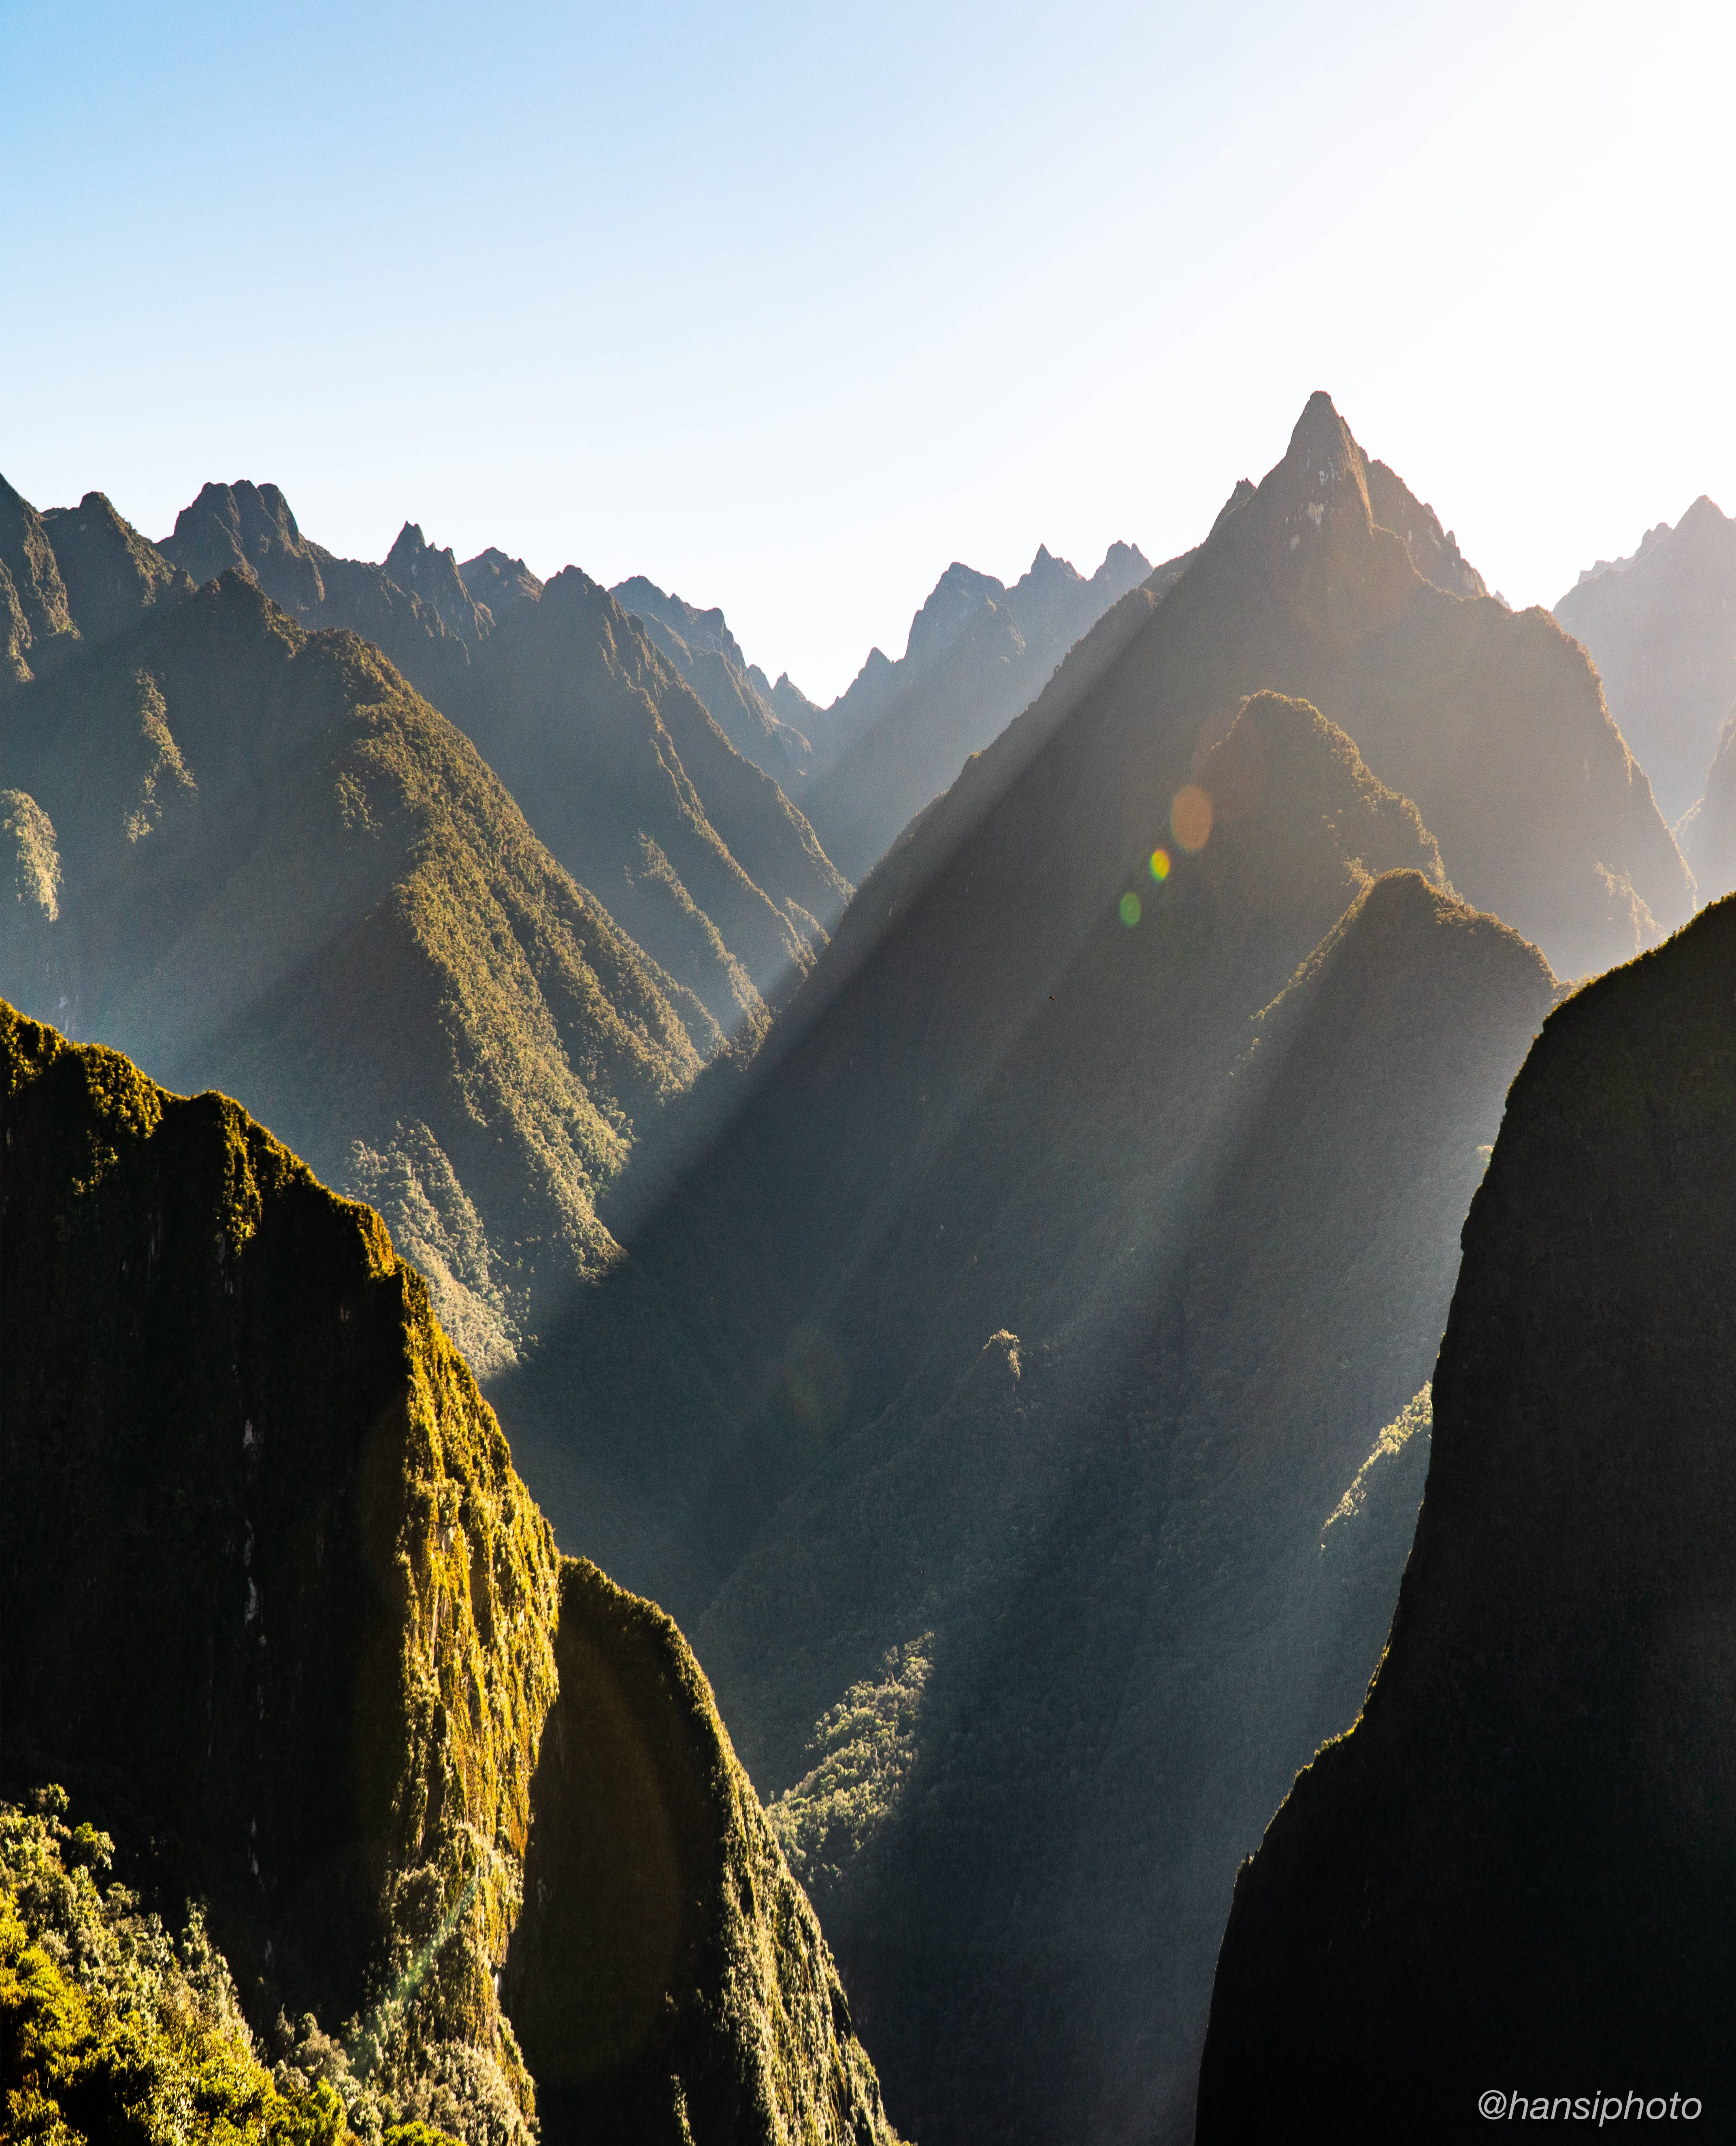 Beams of light and jagged peaks in the Andes Mountains. Machu Picchu, Peru - hansiphoto - bit.ly2u4zLy6